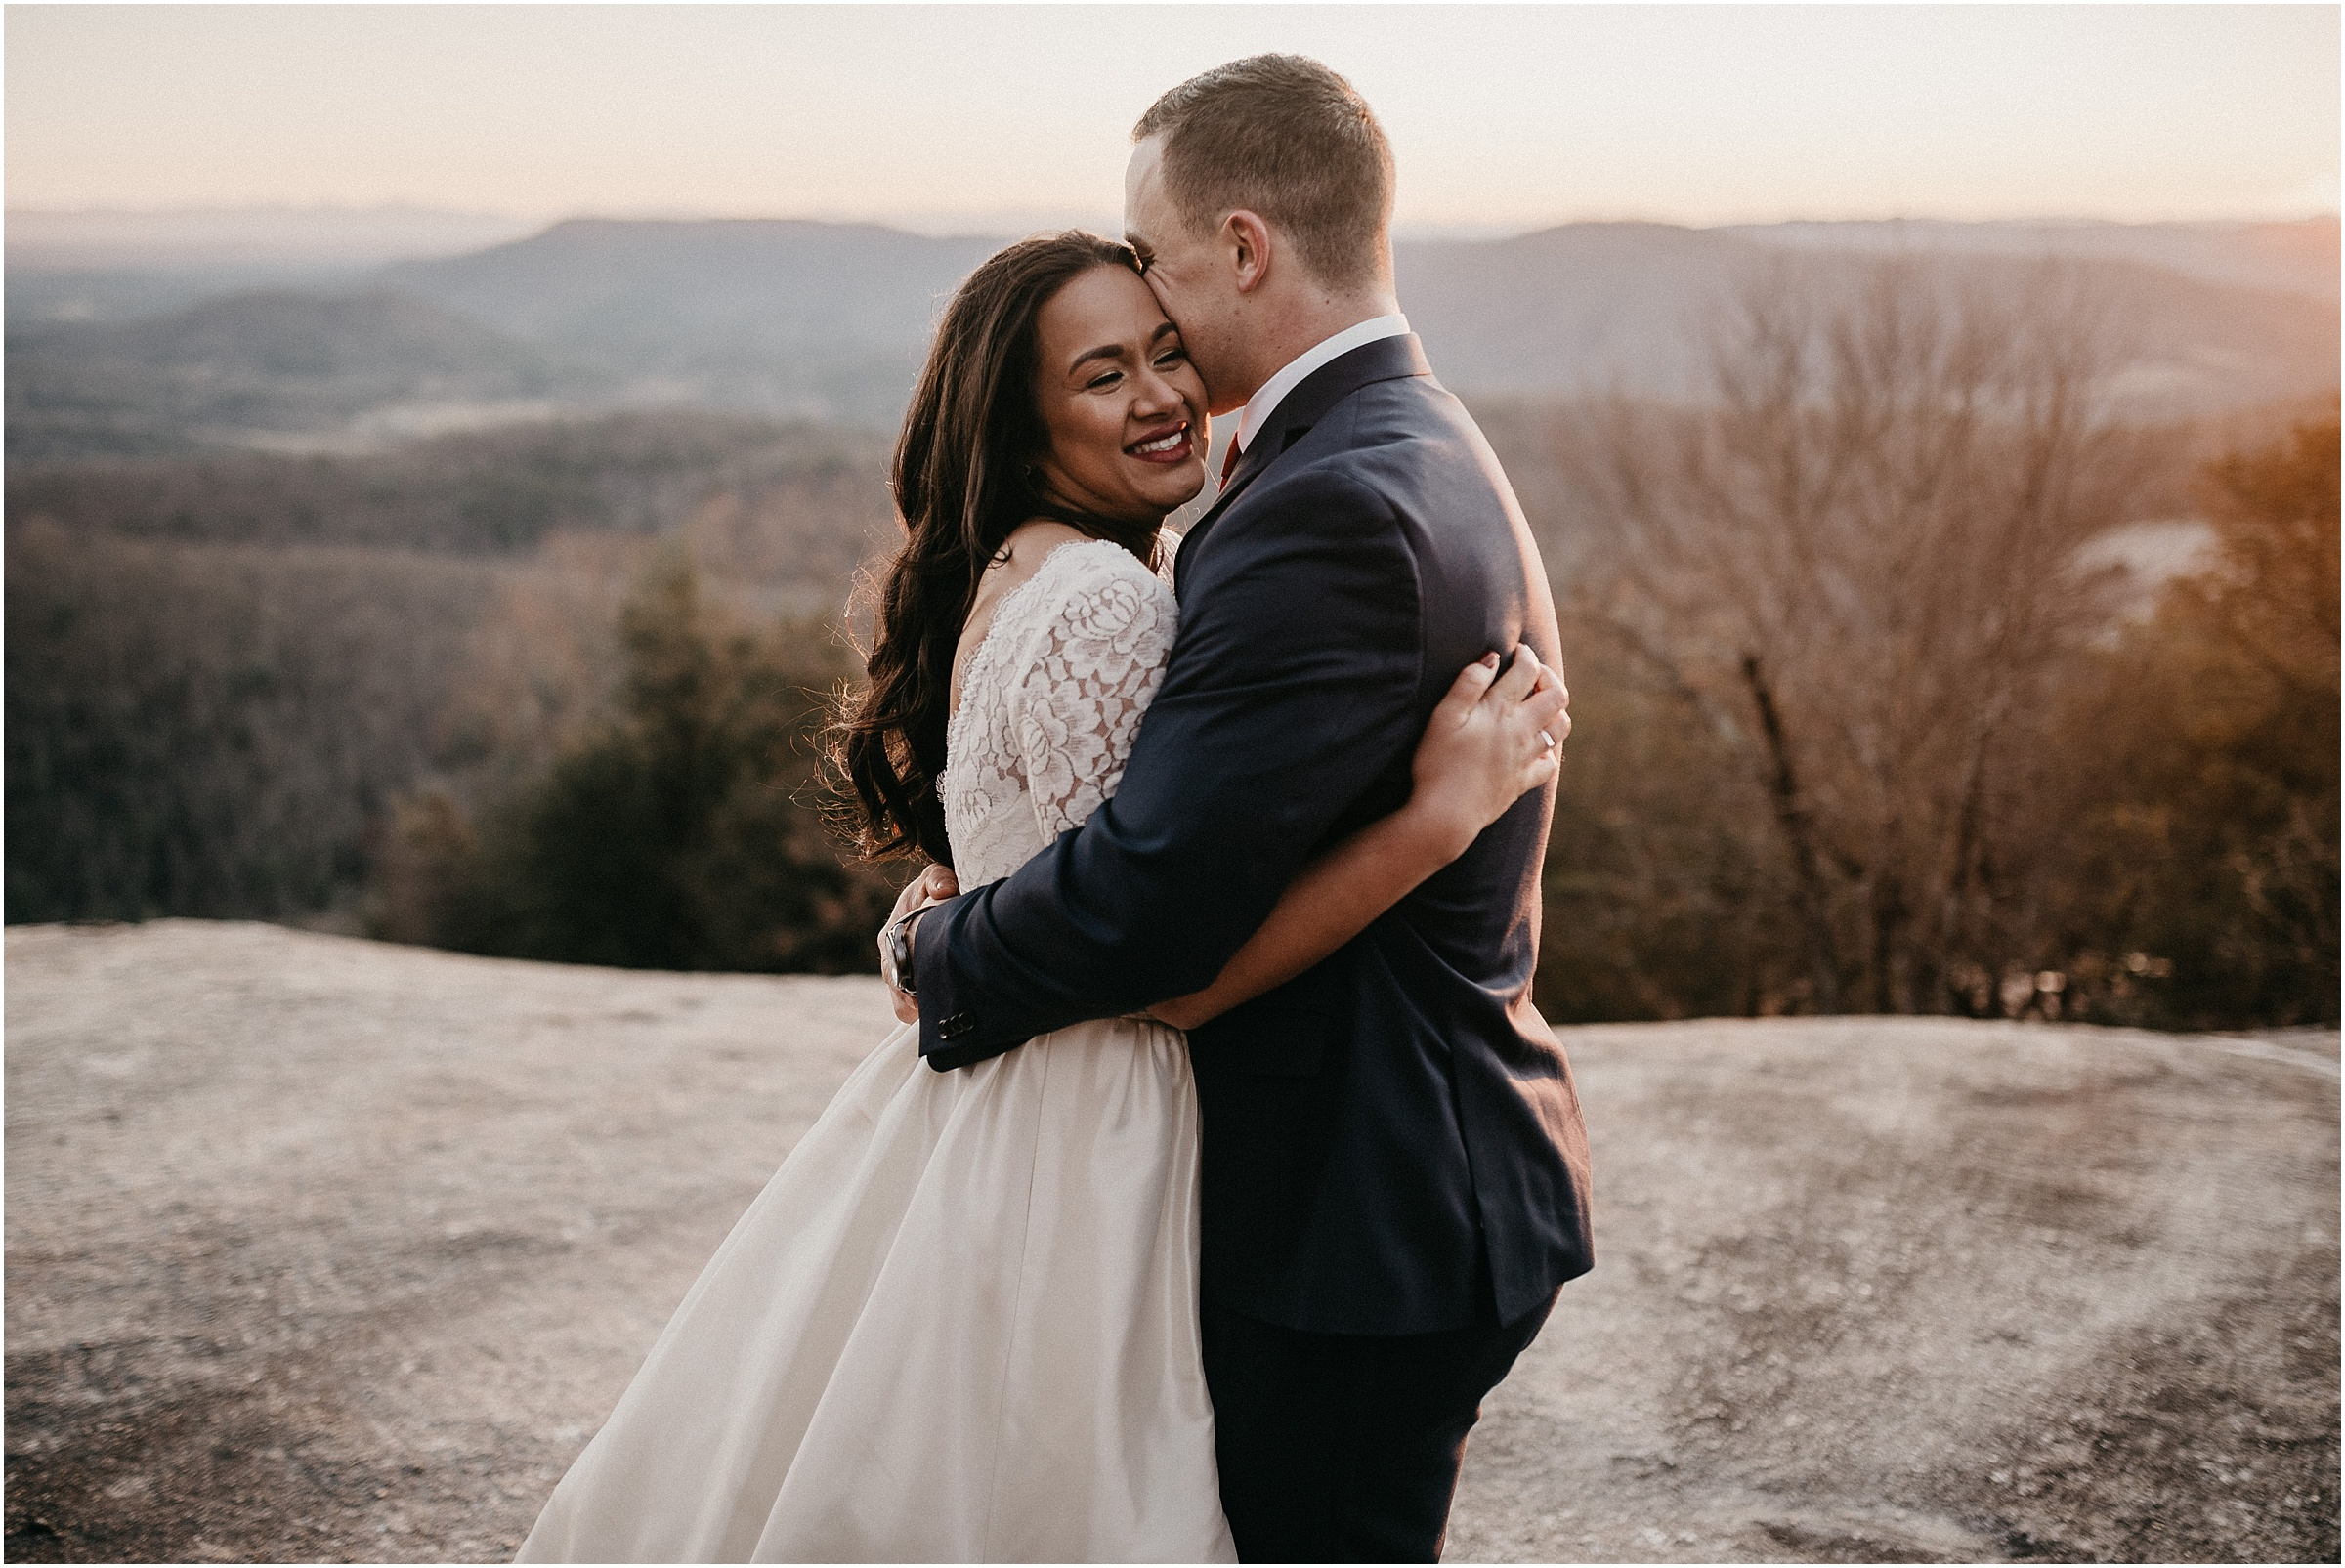 Stone_Mountain_NC_Elopement_57.JPG